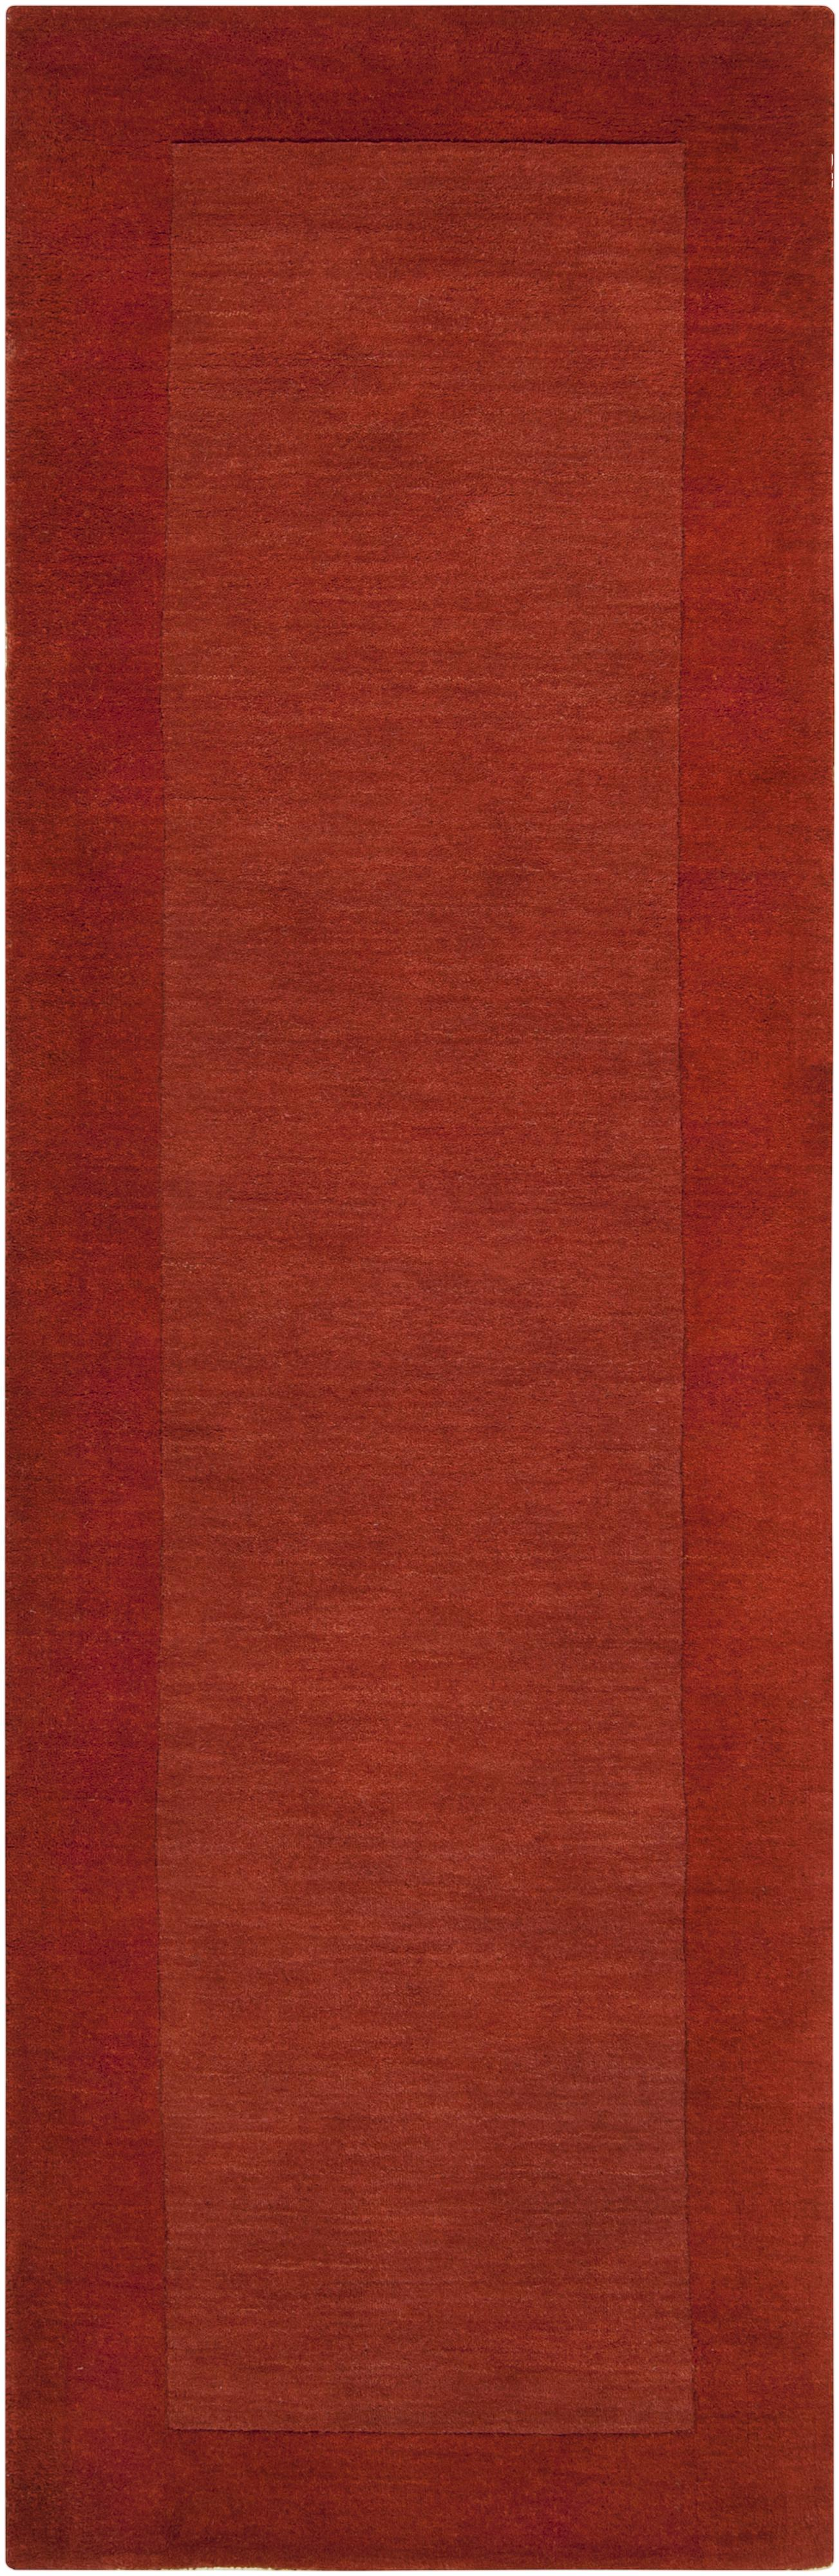 "Surya Rugs Mystique 2'6"" x 8' - Item Number: M300-268"